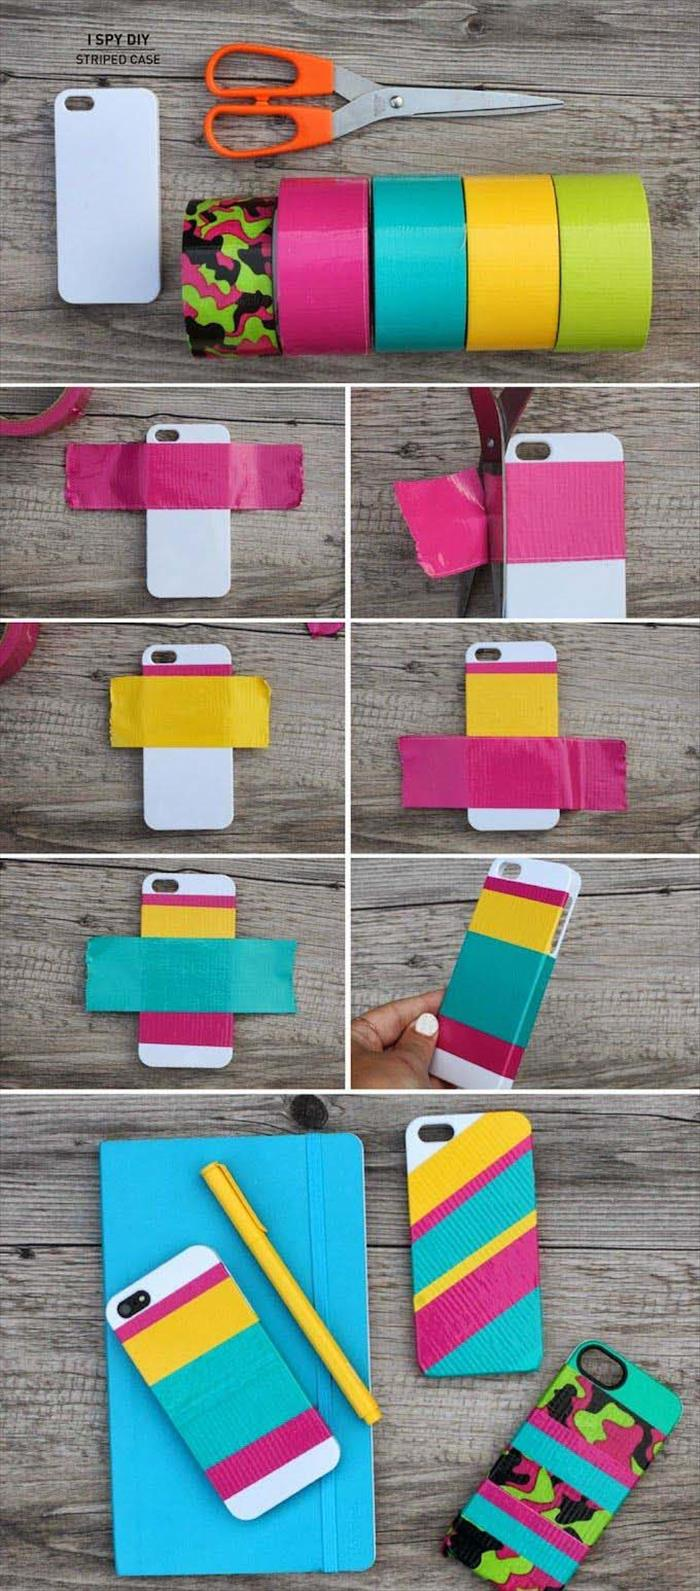 Fun diy craft ideas 38 pics for New handmade craft ideas